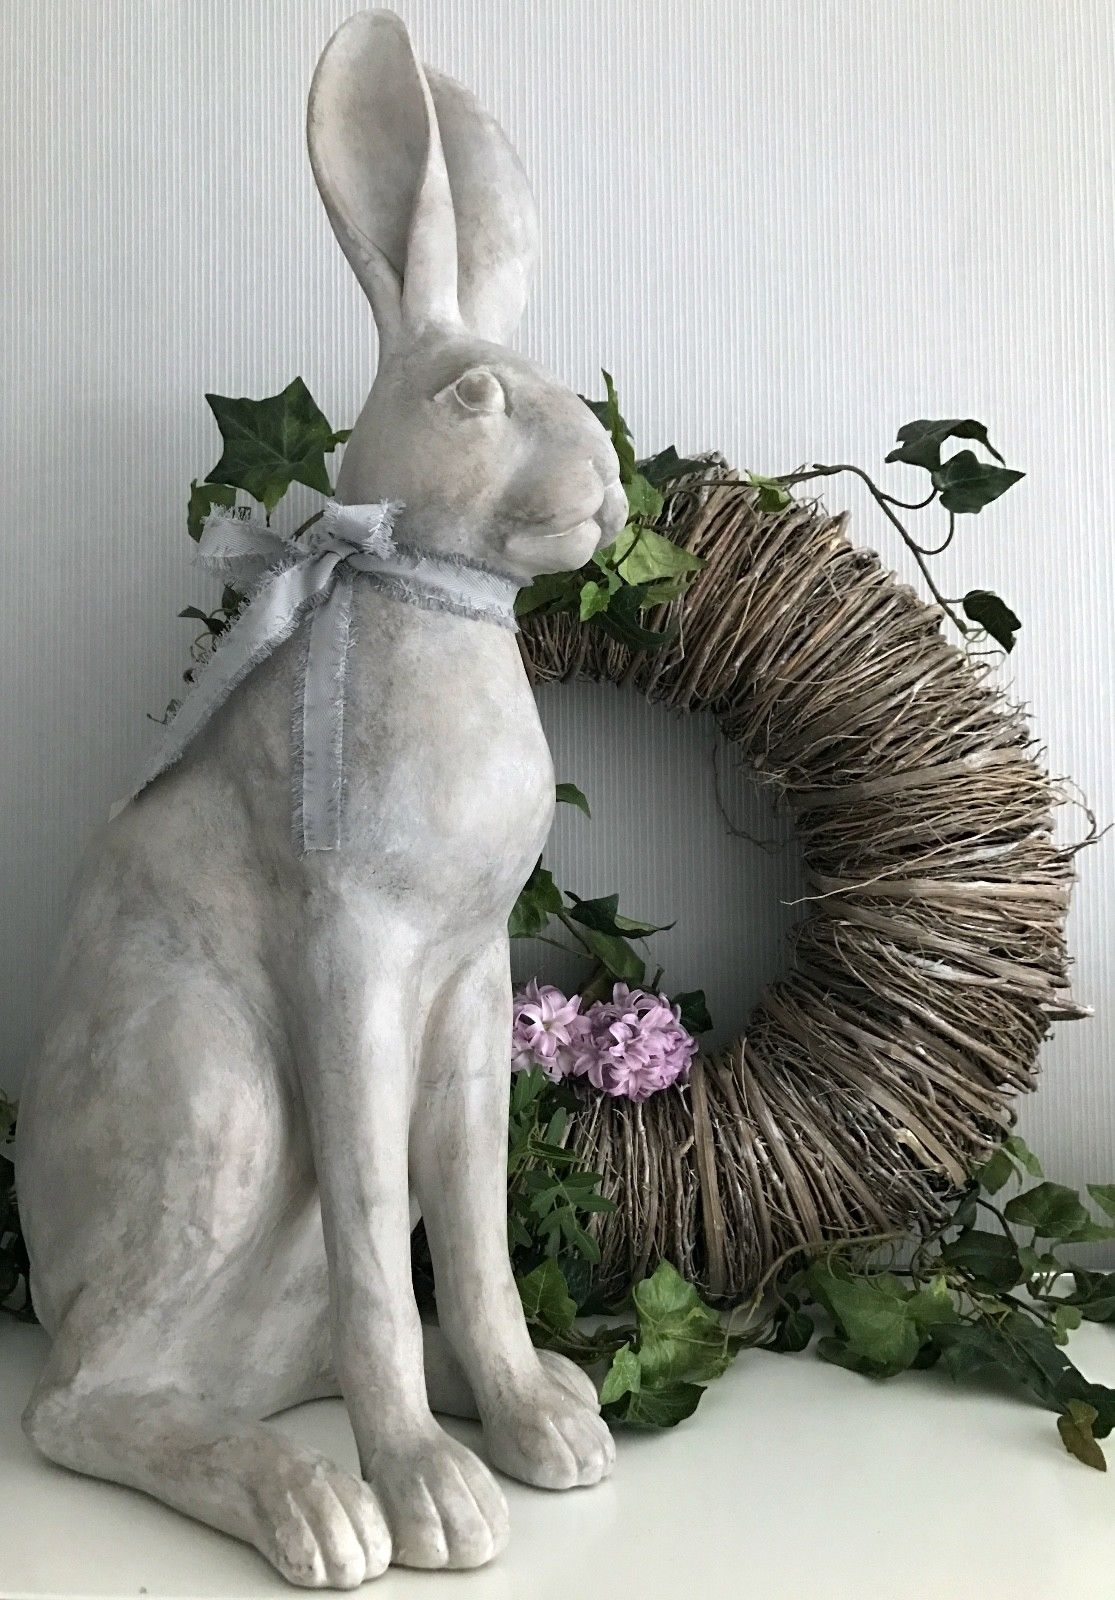 hase osterhase grau wei xxl shabby chic 63 cm gro rabbit giannoula flourou. Black Bedroom Furniture Sets. Home Design Ideas